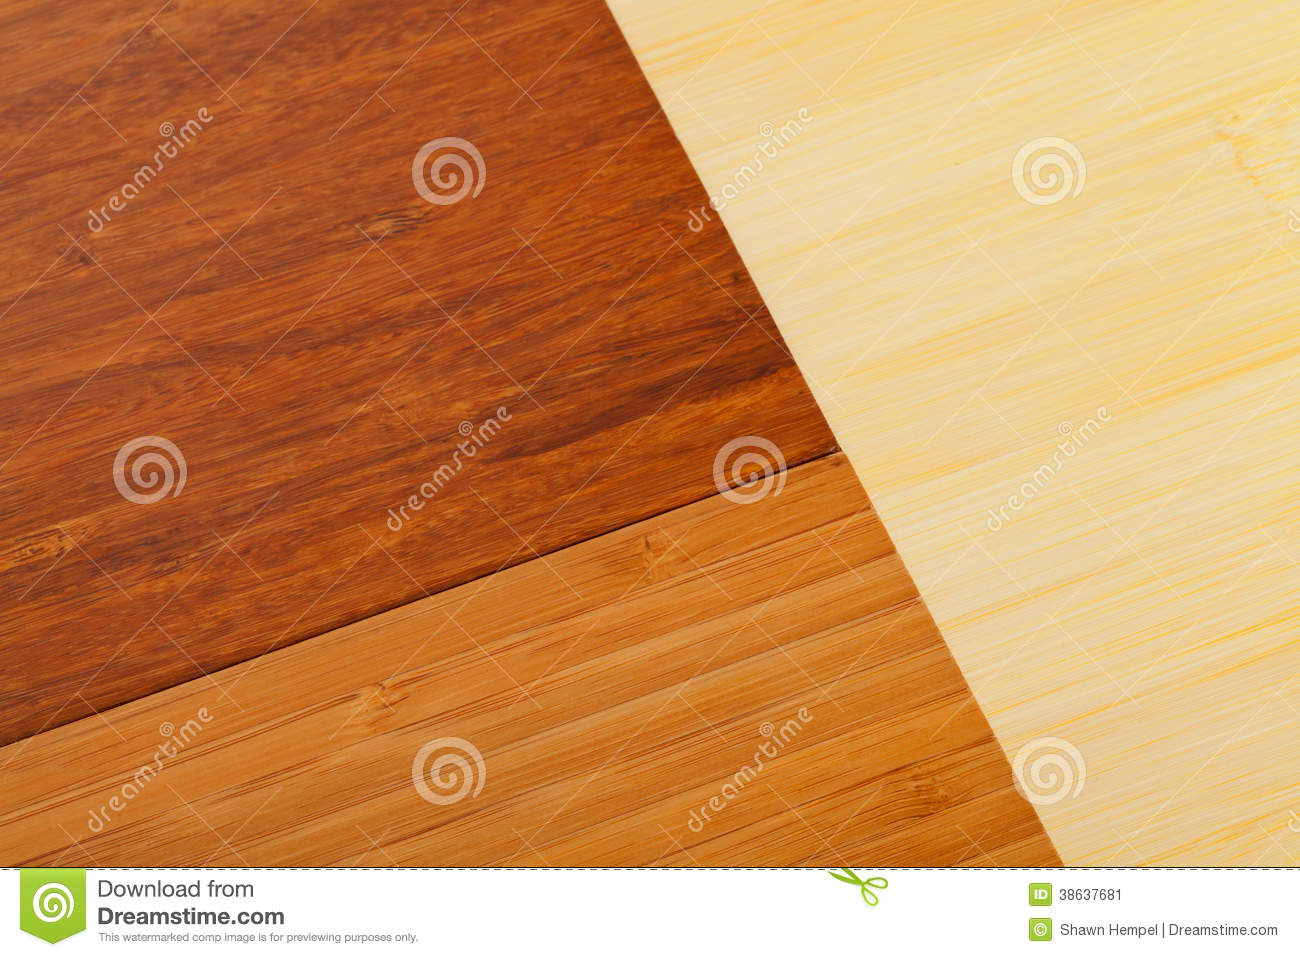 Different Light And Dark Colored Bamboo Laminate Flooring Samples